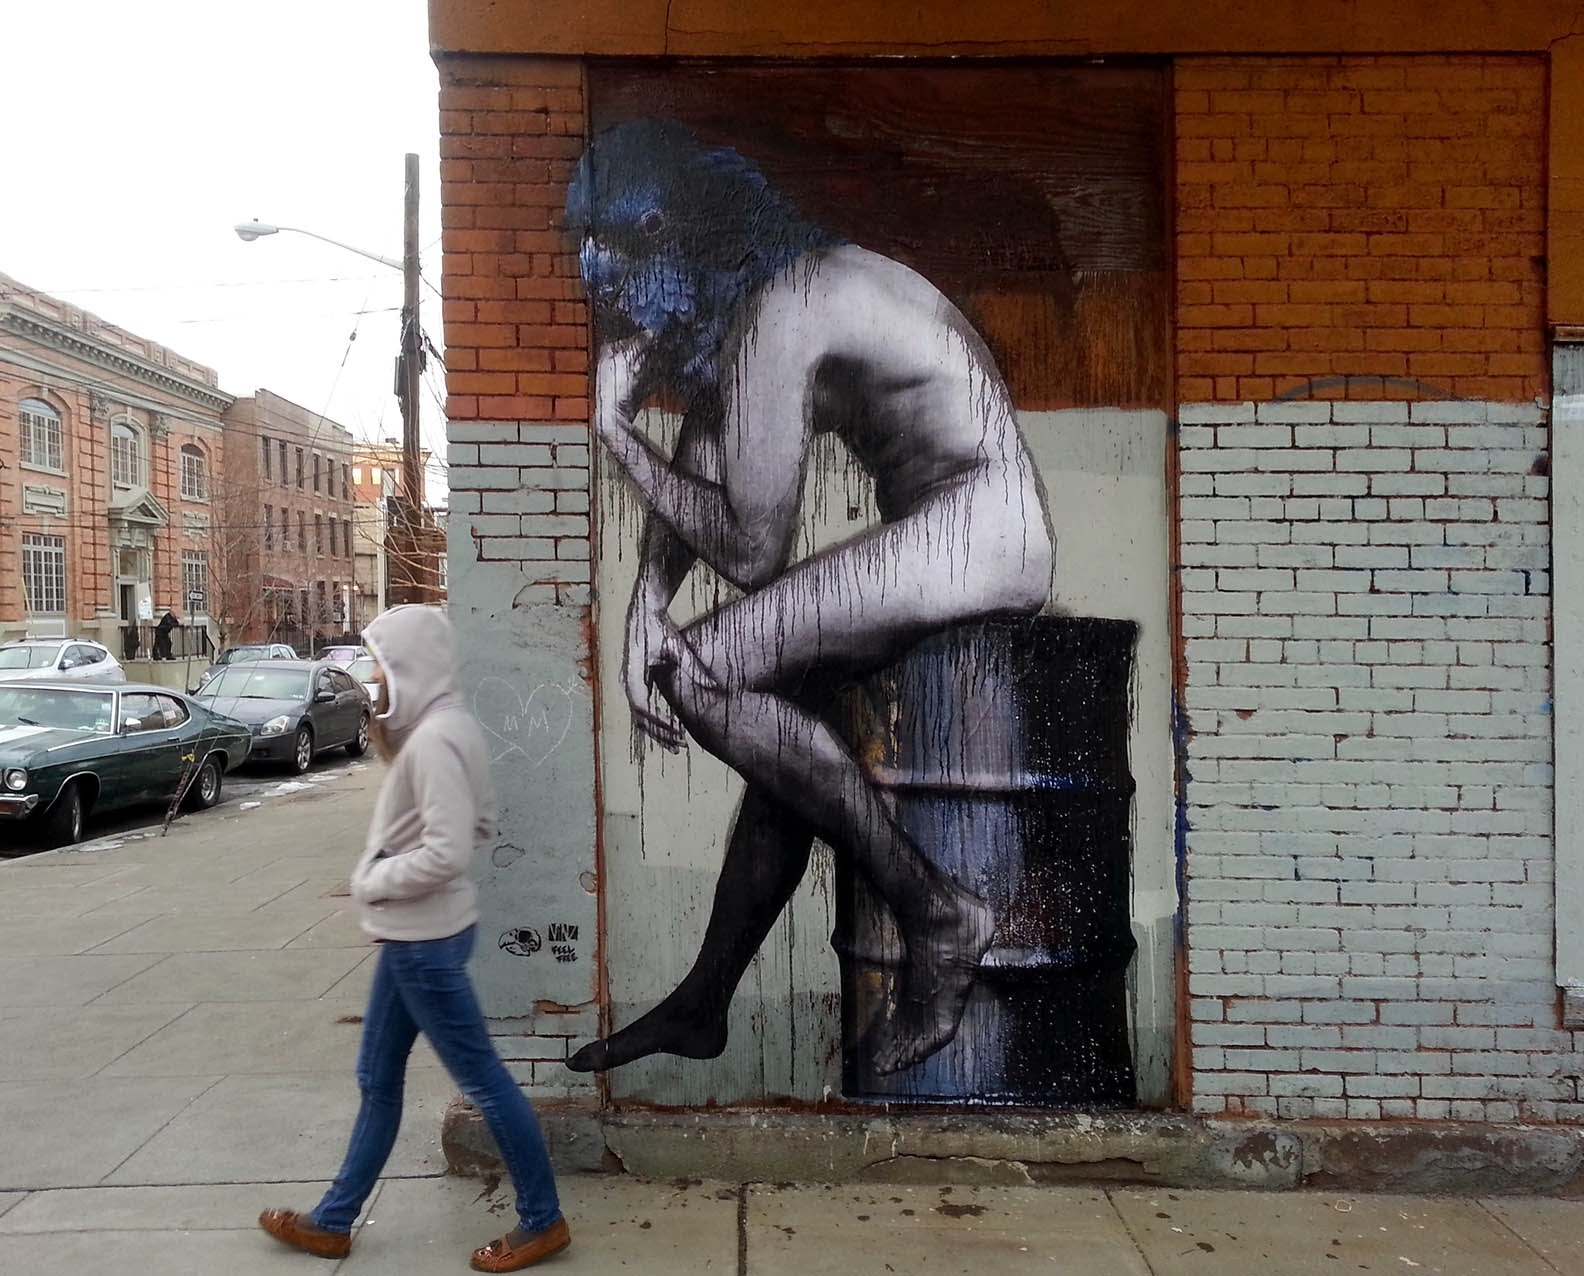 vinz-new-pieces-in-new-york-city-jersey-city-usa-01